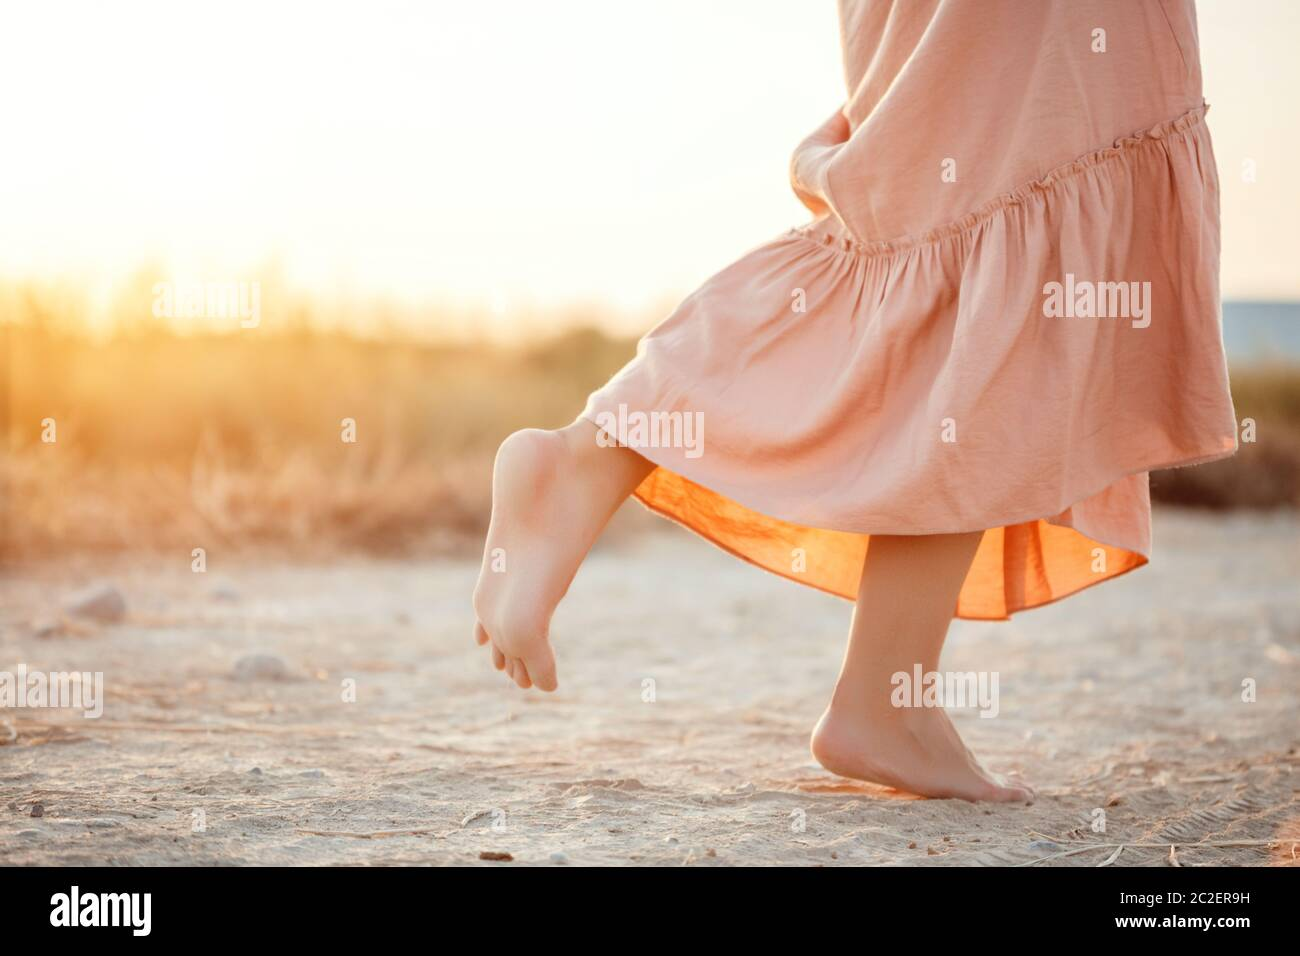 feet of a woman in a pink dress walking on the sand during sunset Stock Photo